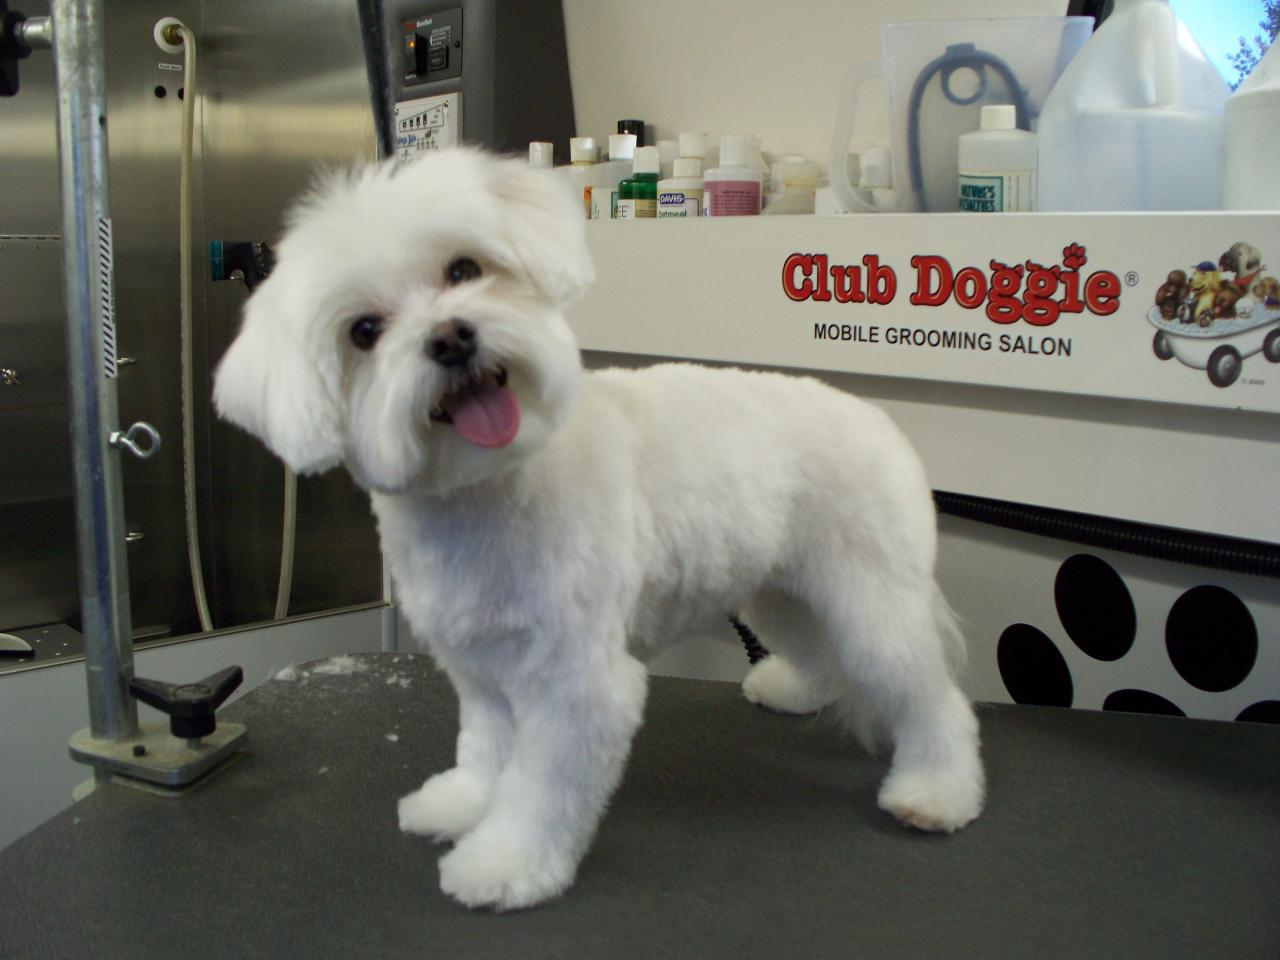 Stupendous Club Doggie Mobile Grooming Salon Before And After Photo Gallery Short Hairstyles For Black Women Fulllsitofus